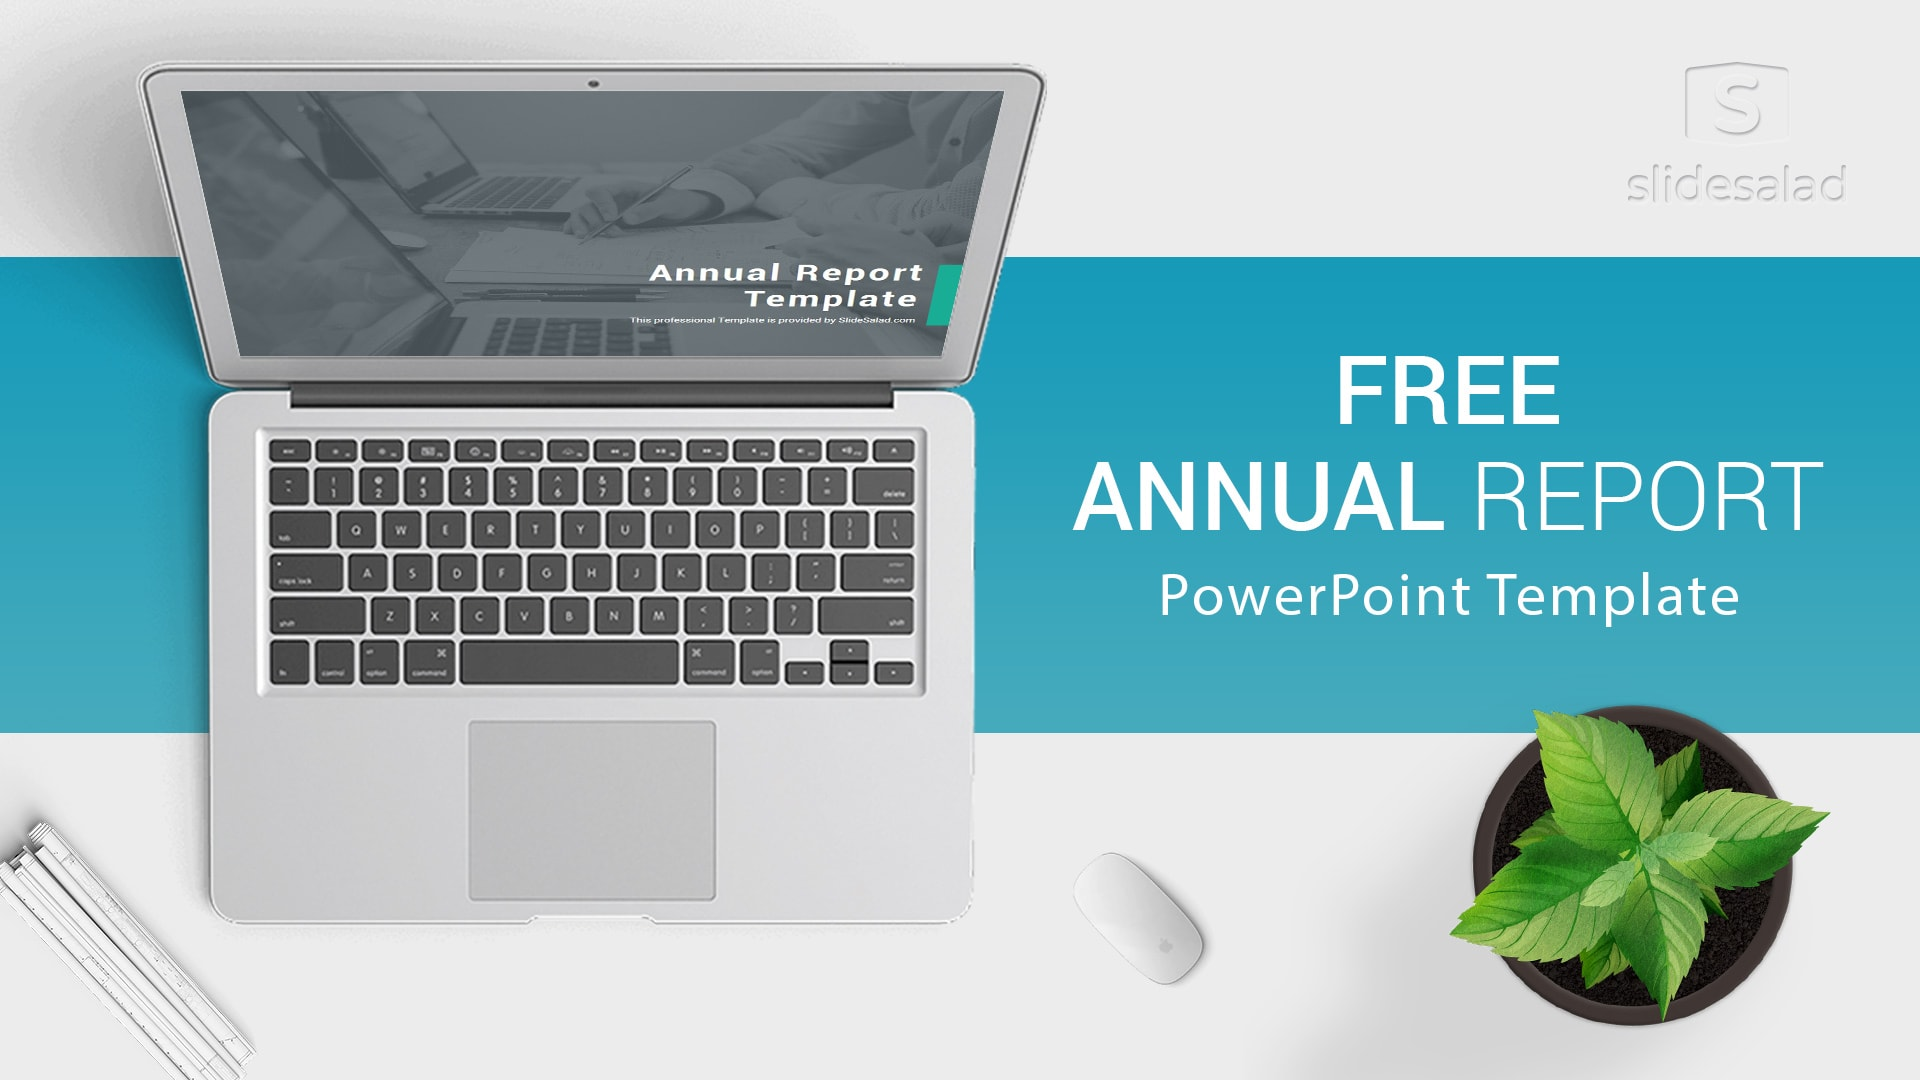 Annual Report PowerPoint Template for Presentations – Trending Free Charts, Statistics and Graphs PPT Templates